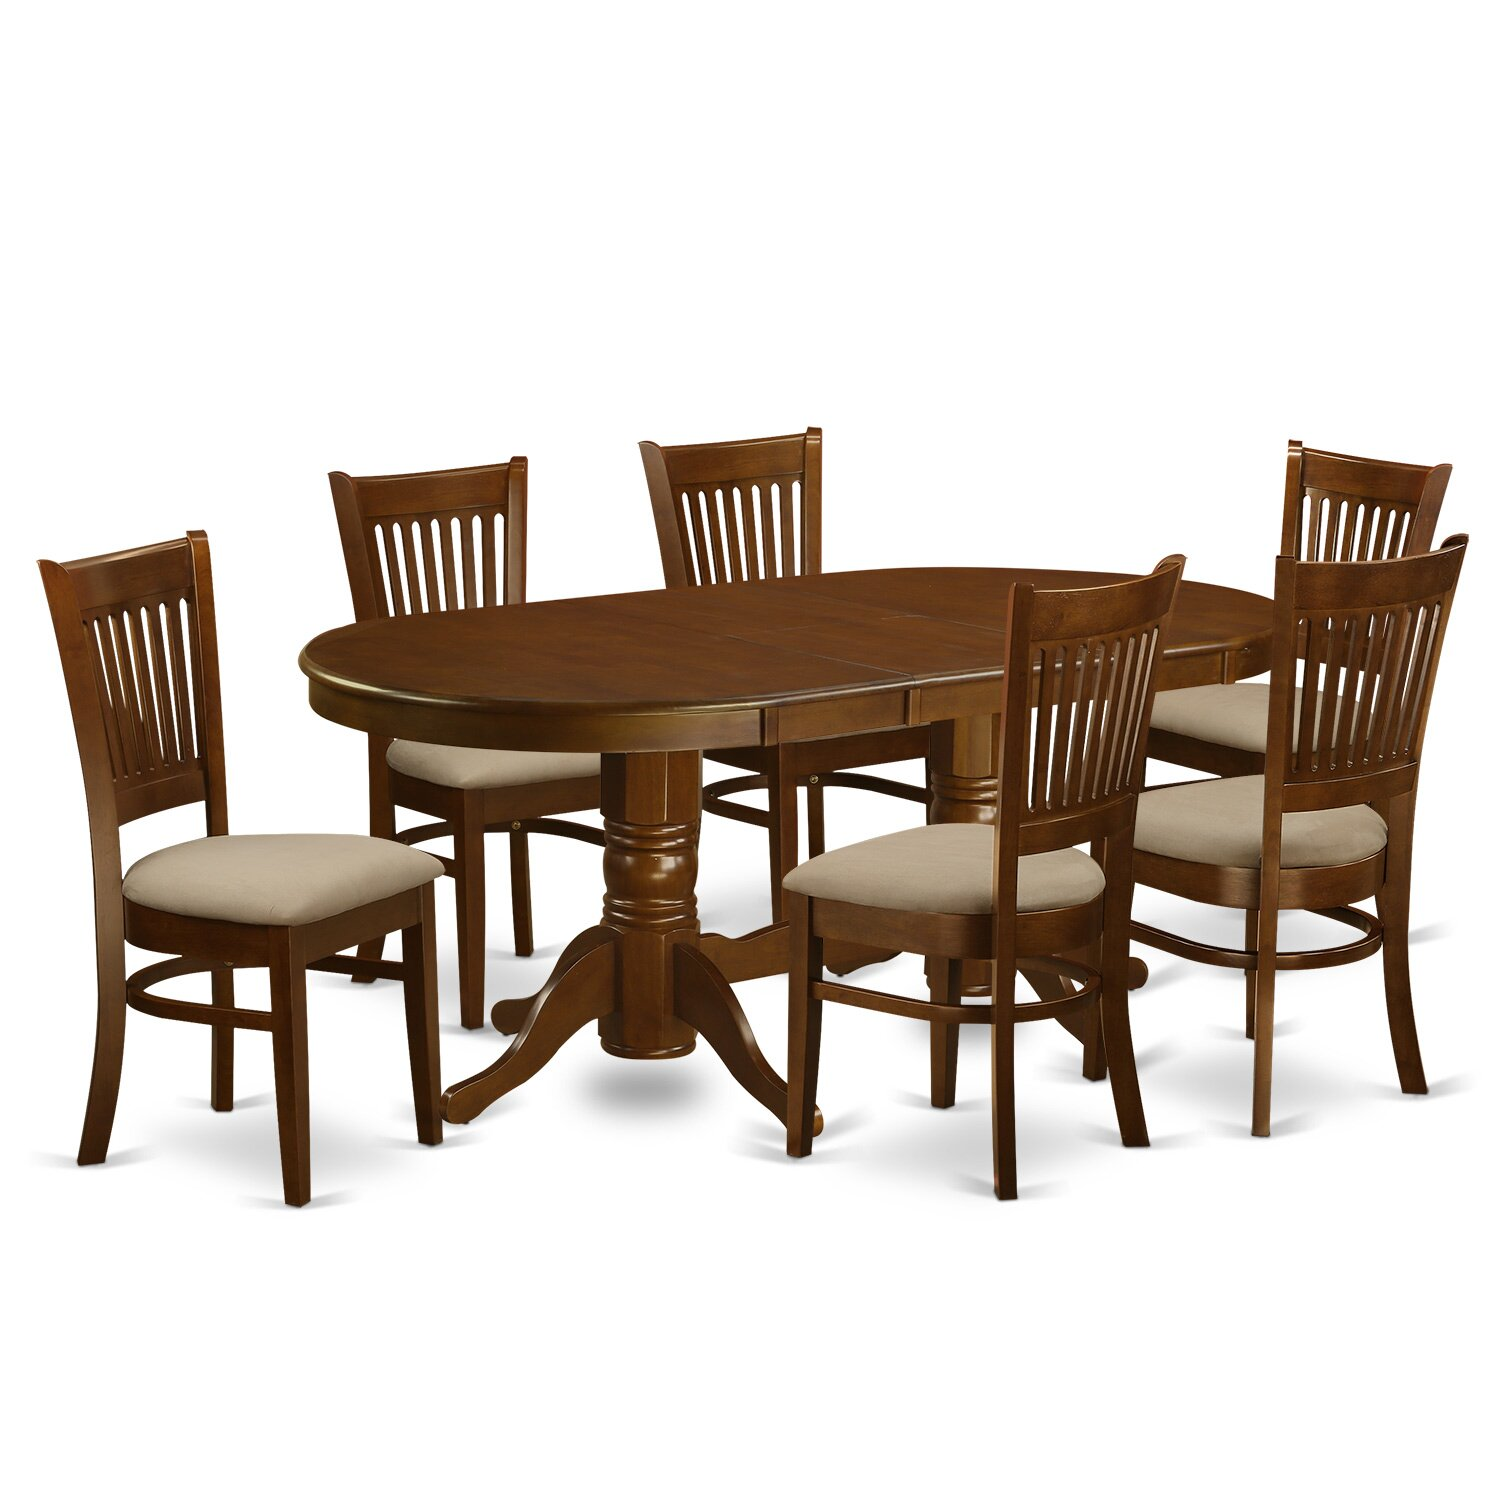 ethan allen dining room chairs craigslist search